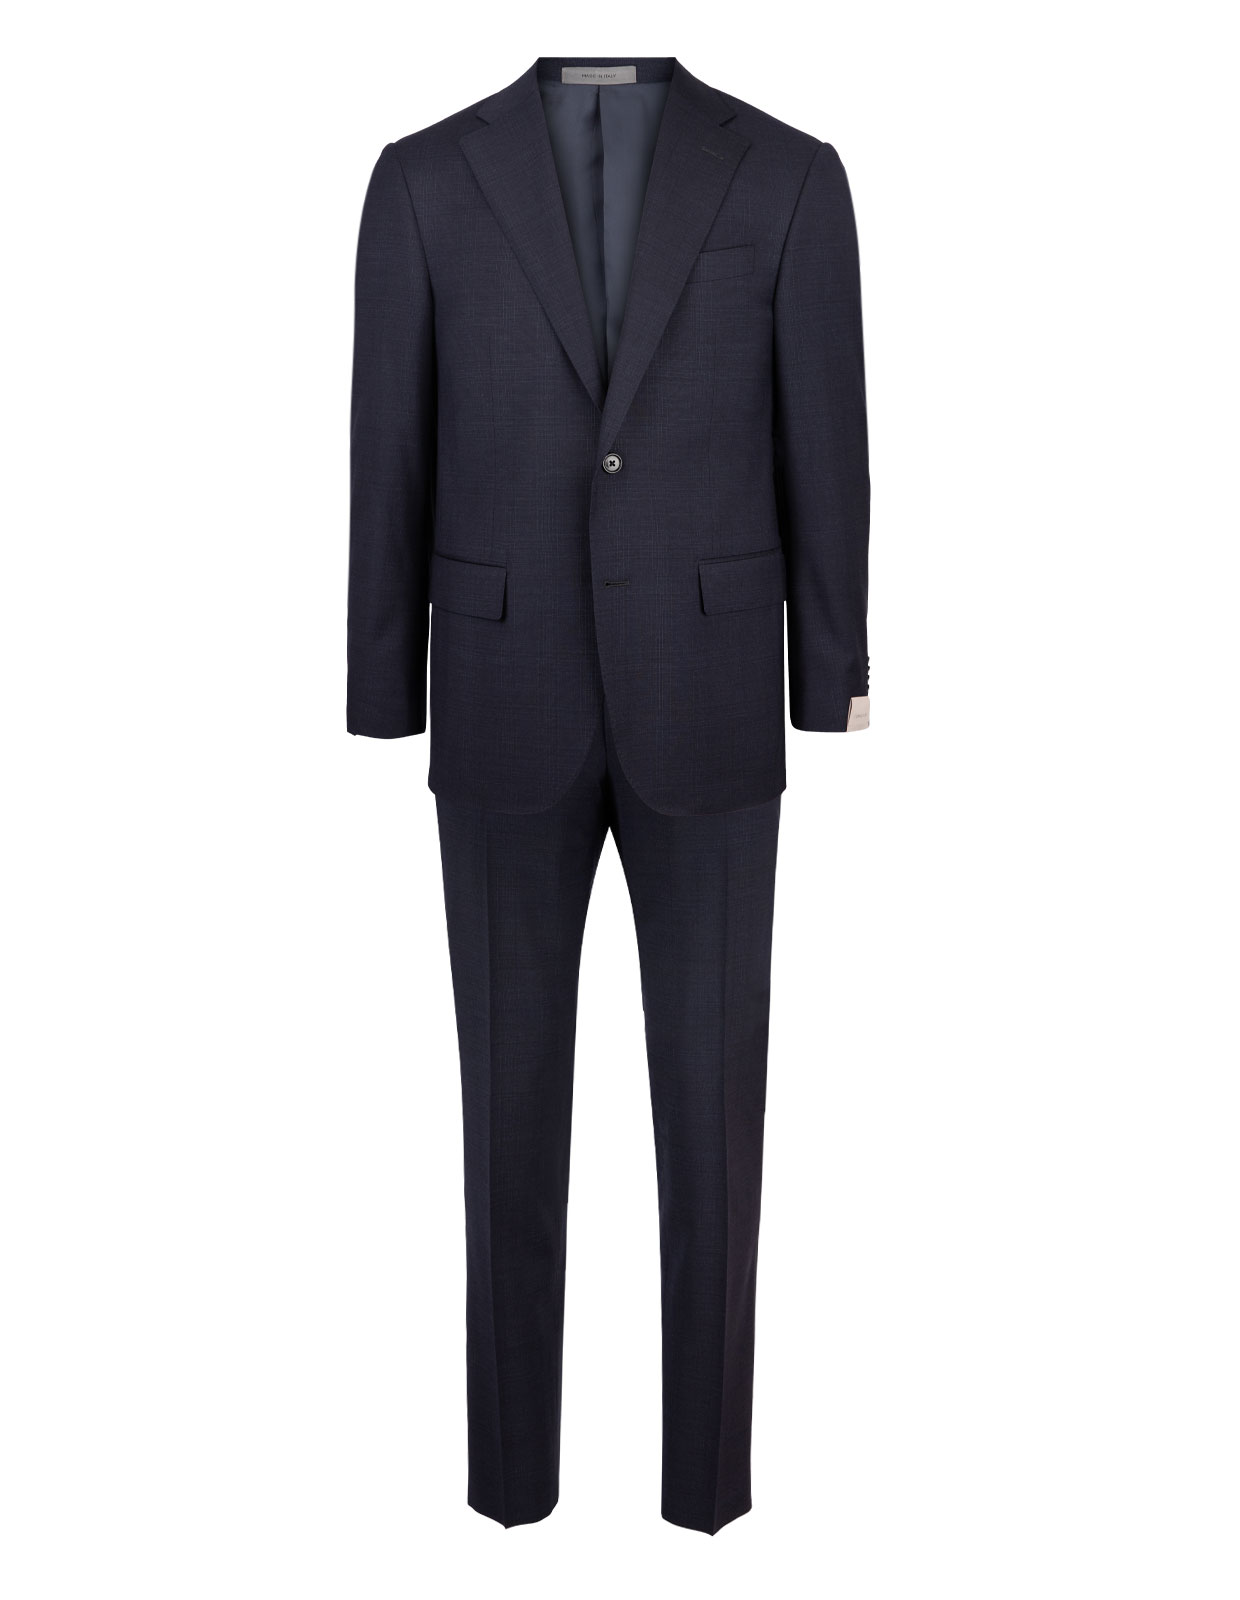 Leader 7268 Wool Suit Dark Blue Check